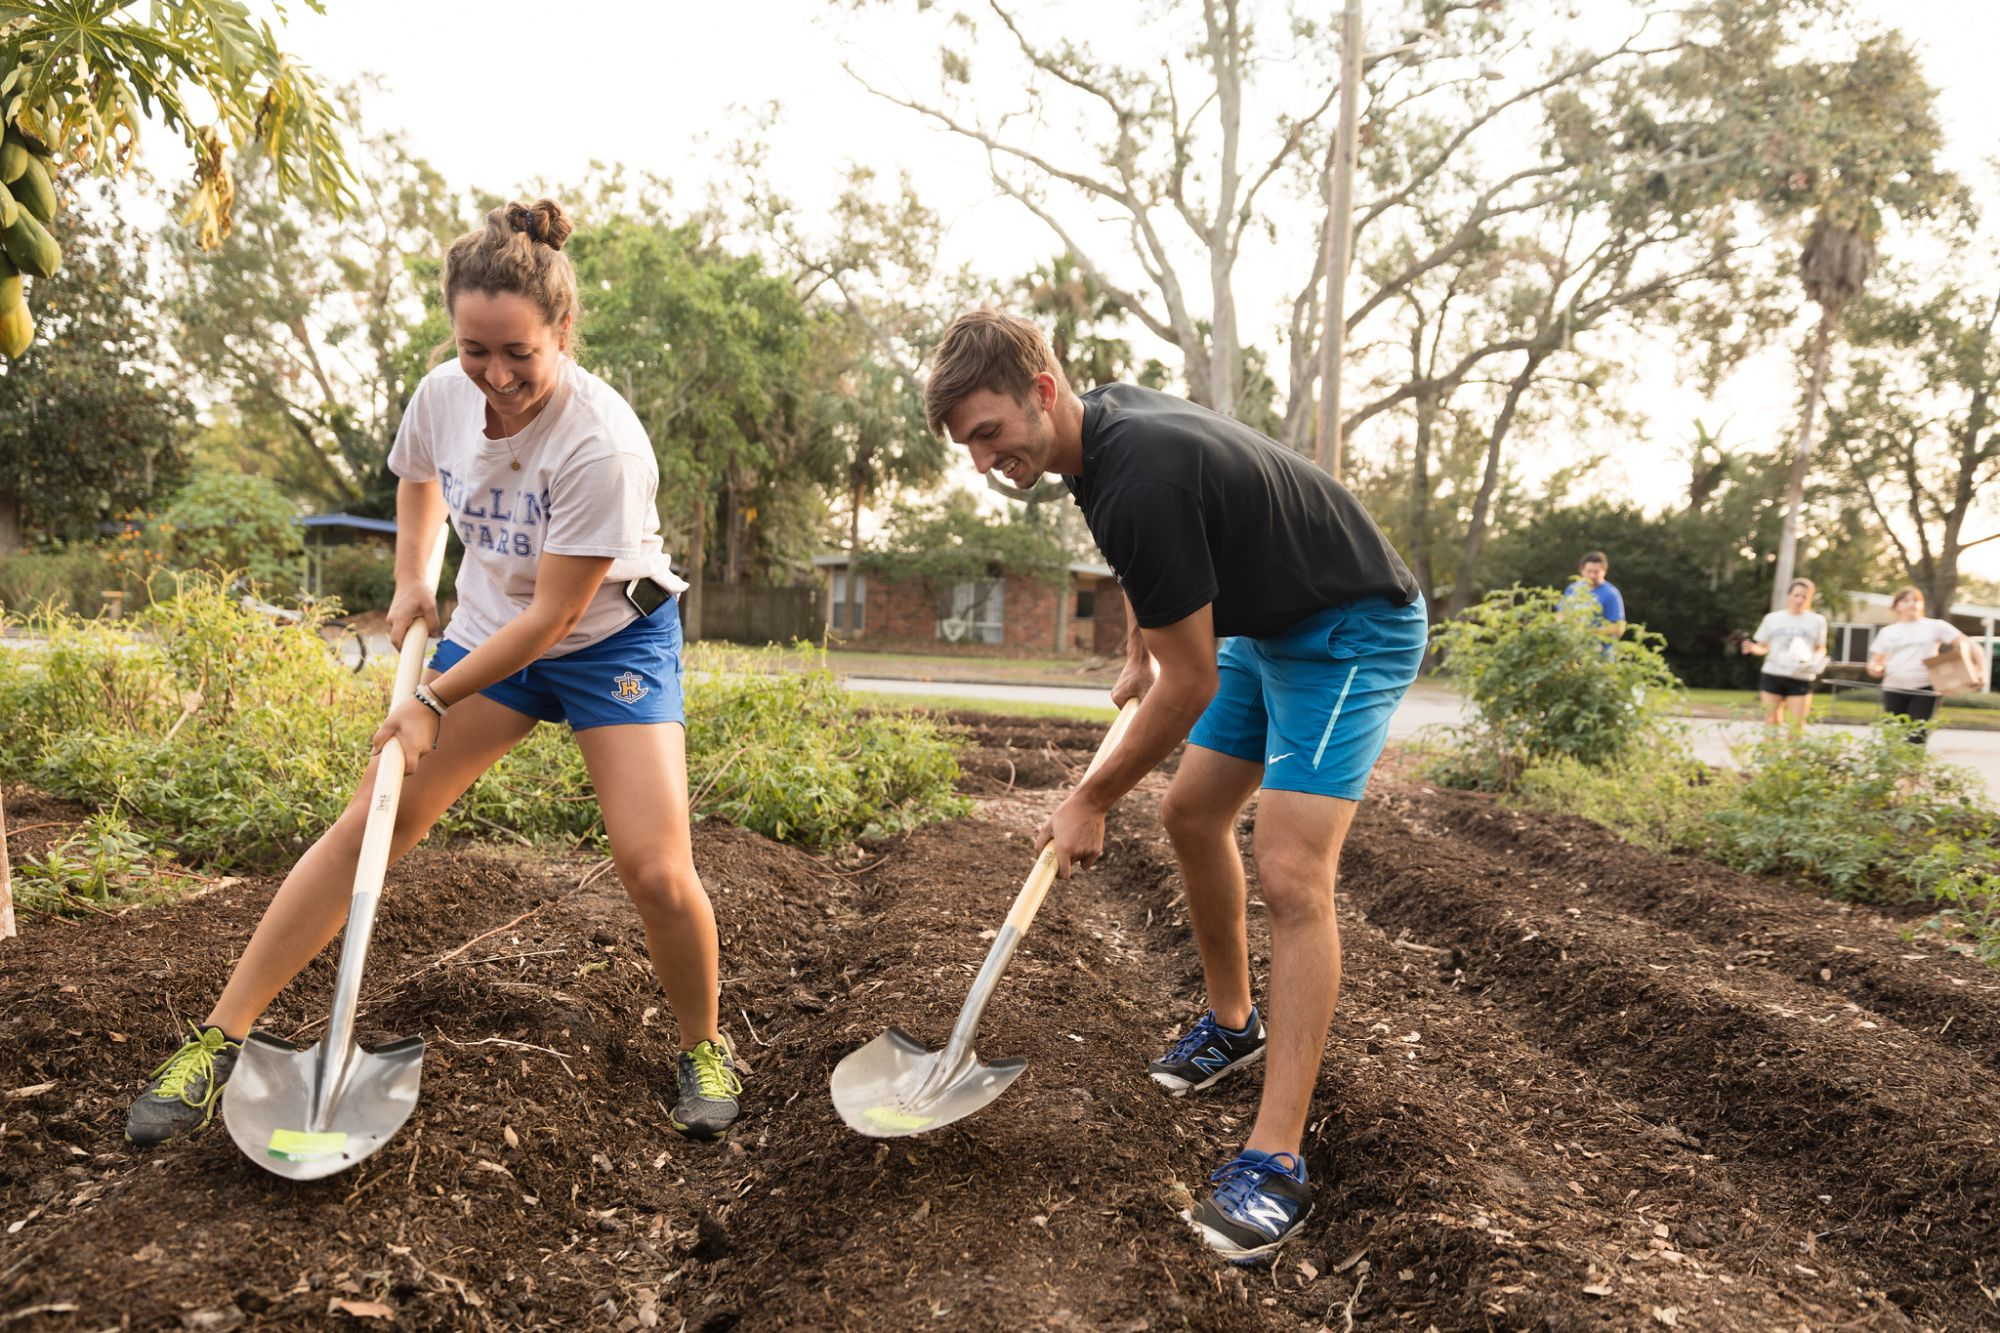 Students prepare soil in residential lawns for planting of urban micro-farms.